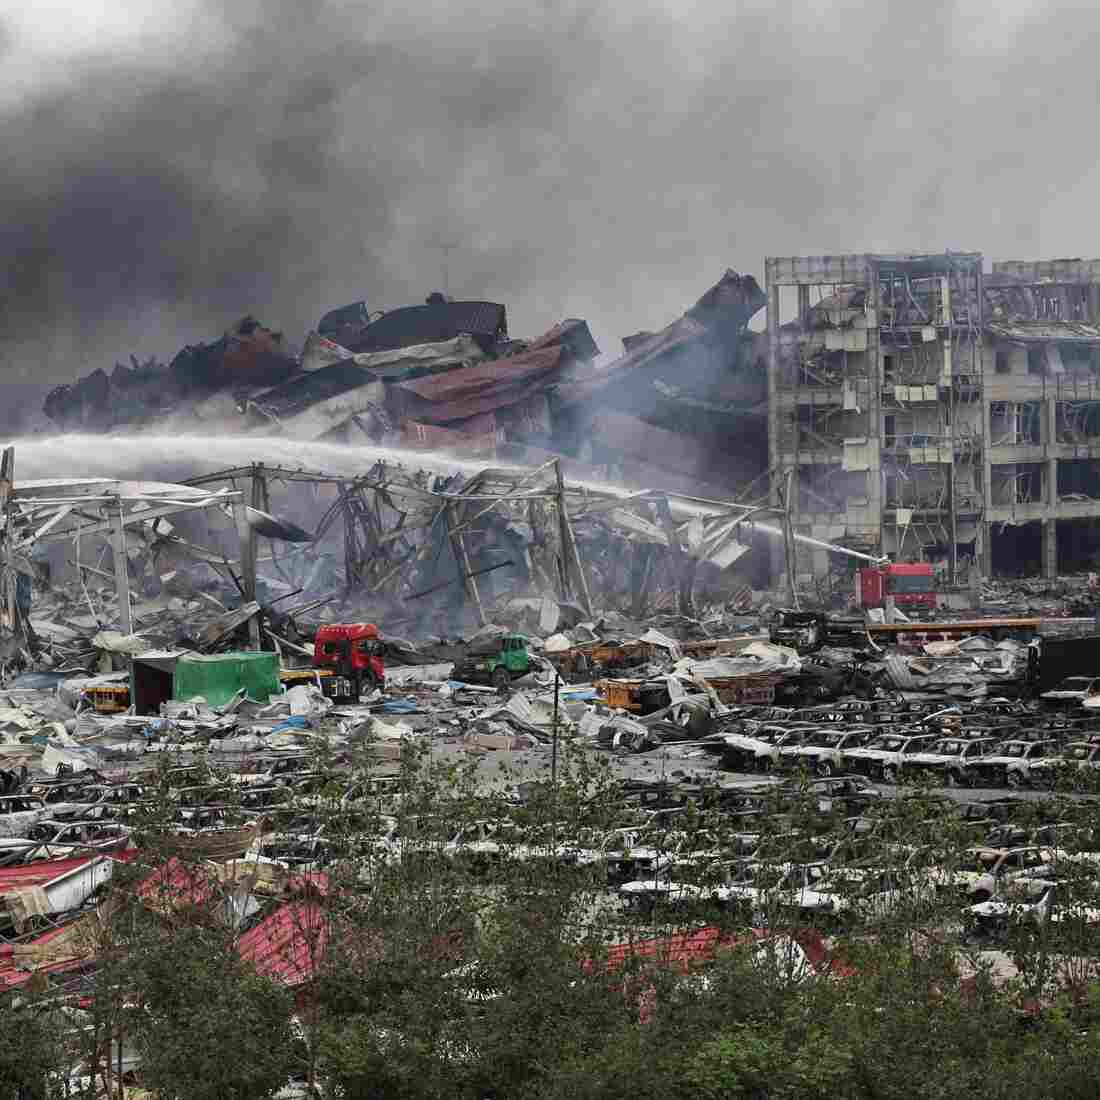 Death Toll Rises As Investigation Into Chinese Port Explosions Continues